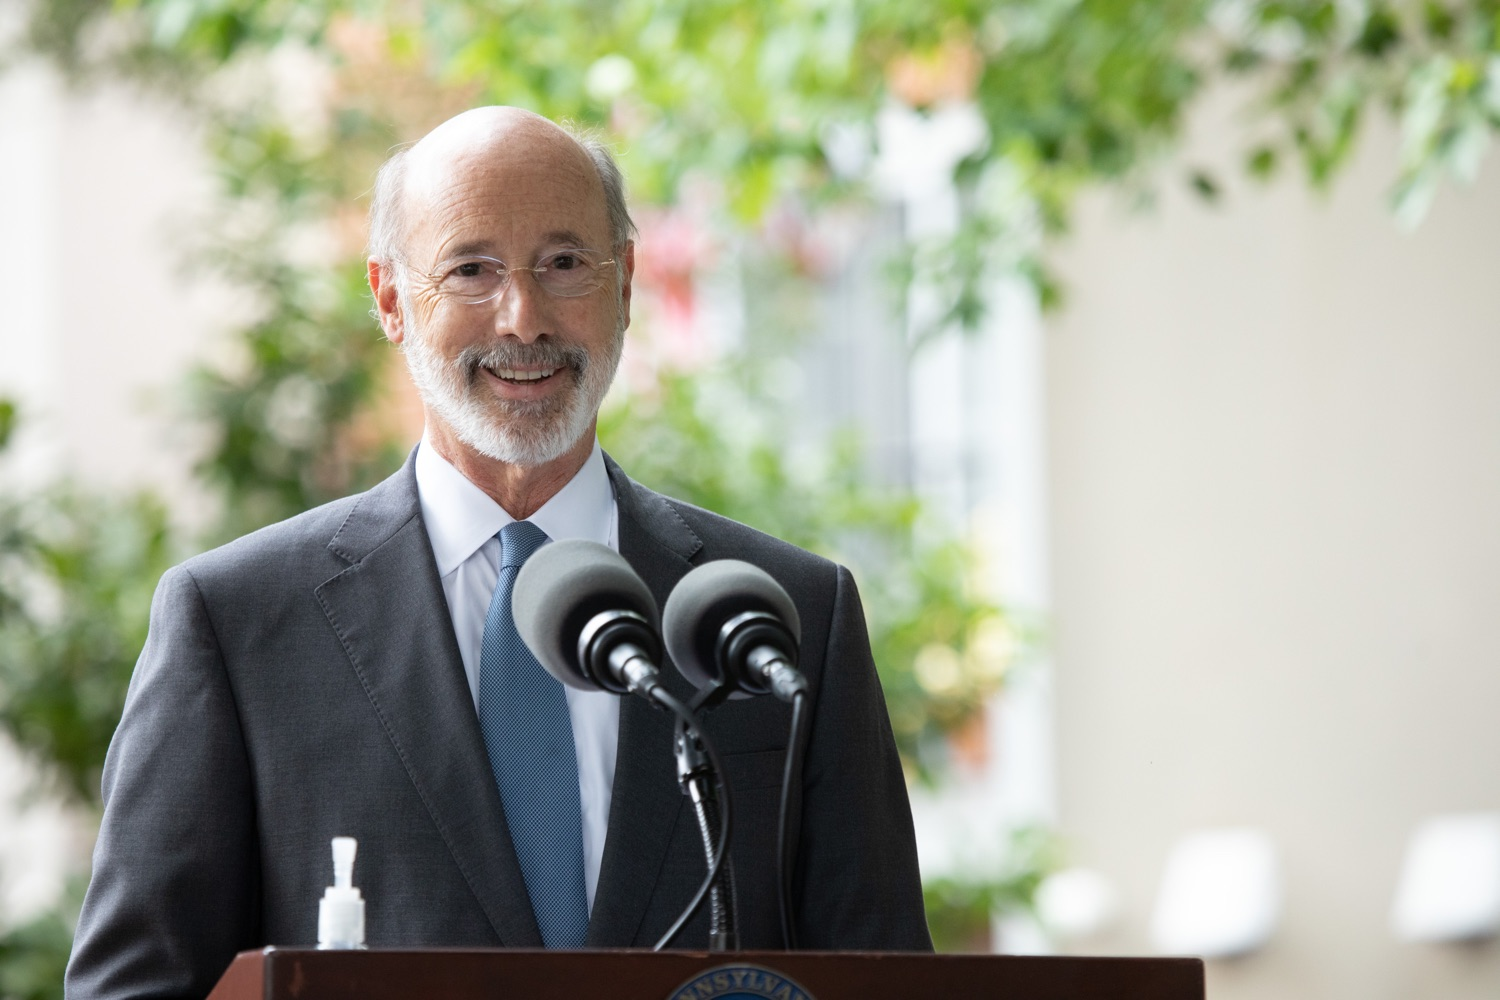 "<a href=""https://filesource.wostreaming.net/commonwealthofpa/photo/18178_GOV_Lancaster_Health_dz__17.jpg"" target=""_blank"">⇣ Download Photo<br></a>Pennsylvania Governor Tom Wolf speaking at the event.  Governor Tom Wolf today visited Lancaster Health Center, a federally qualified health center, to thank staff for their work to ensure the communitys most vulnerable receive care during COVID-19 and year-round.  Harrisburg, PA  July 24, 2020"